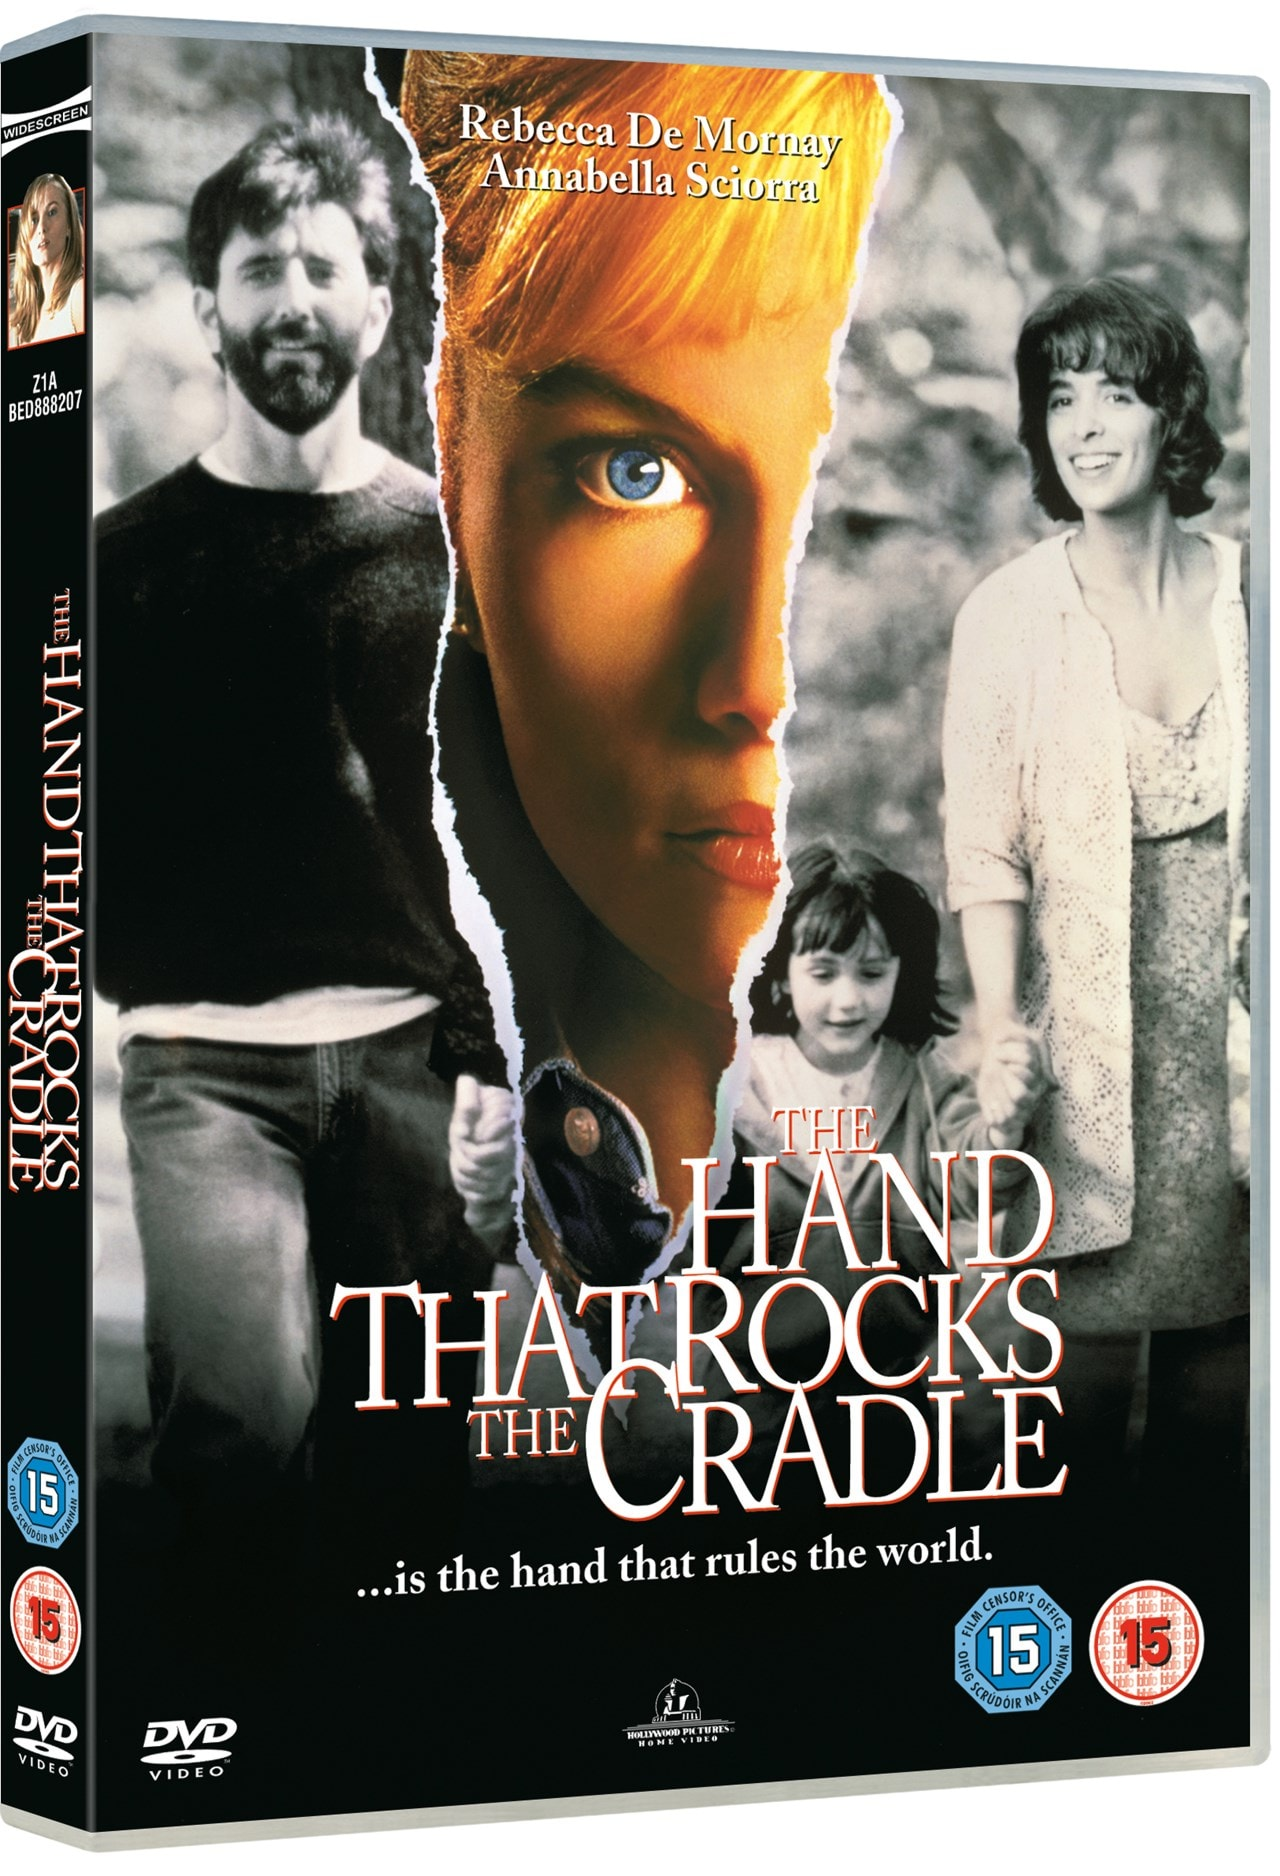 The Hand That Rocks The Cradle Dvd Free Shipping Over 20 Hmv Store